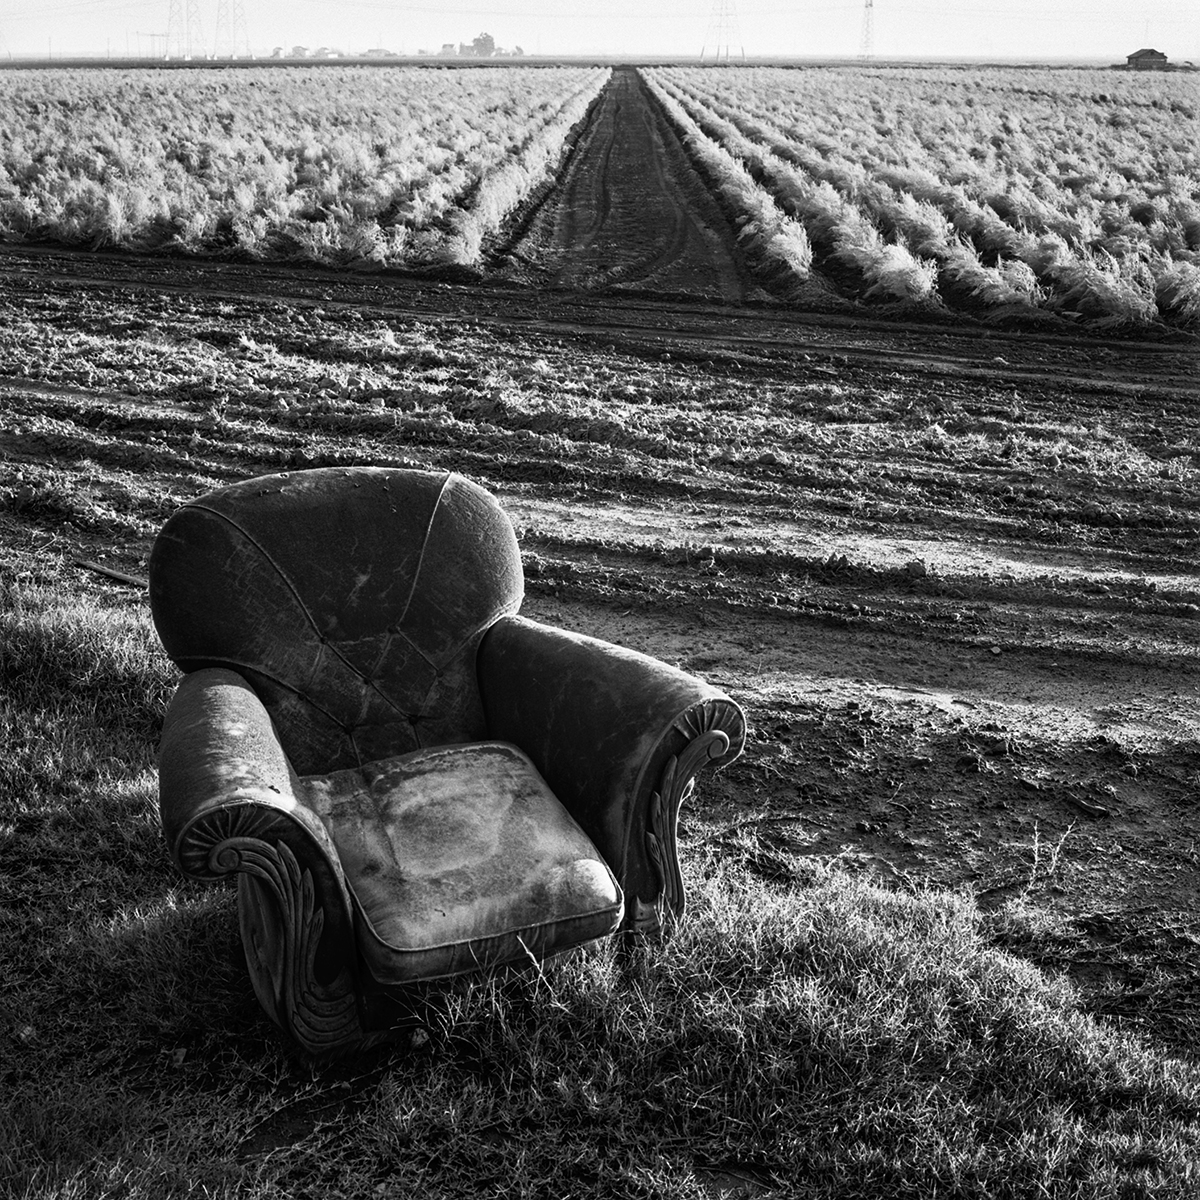 Chair & Asparagus Field, 1967